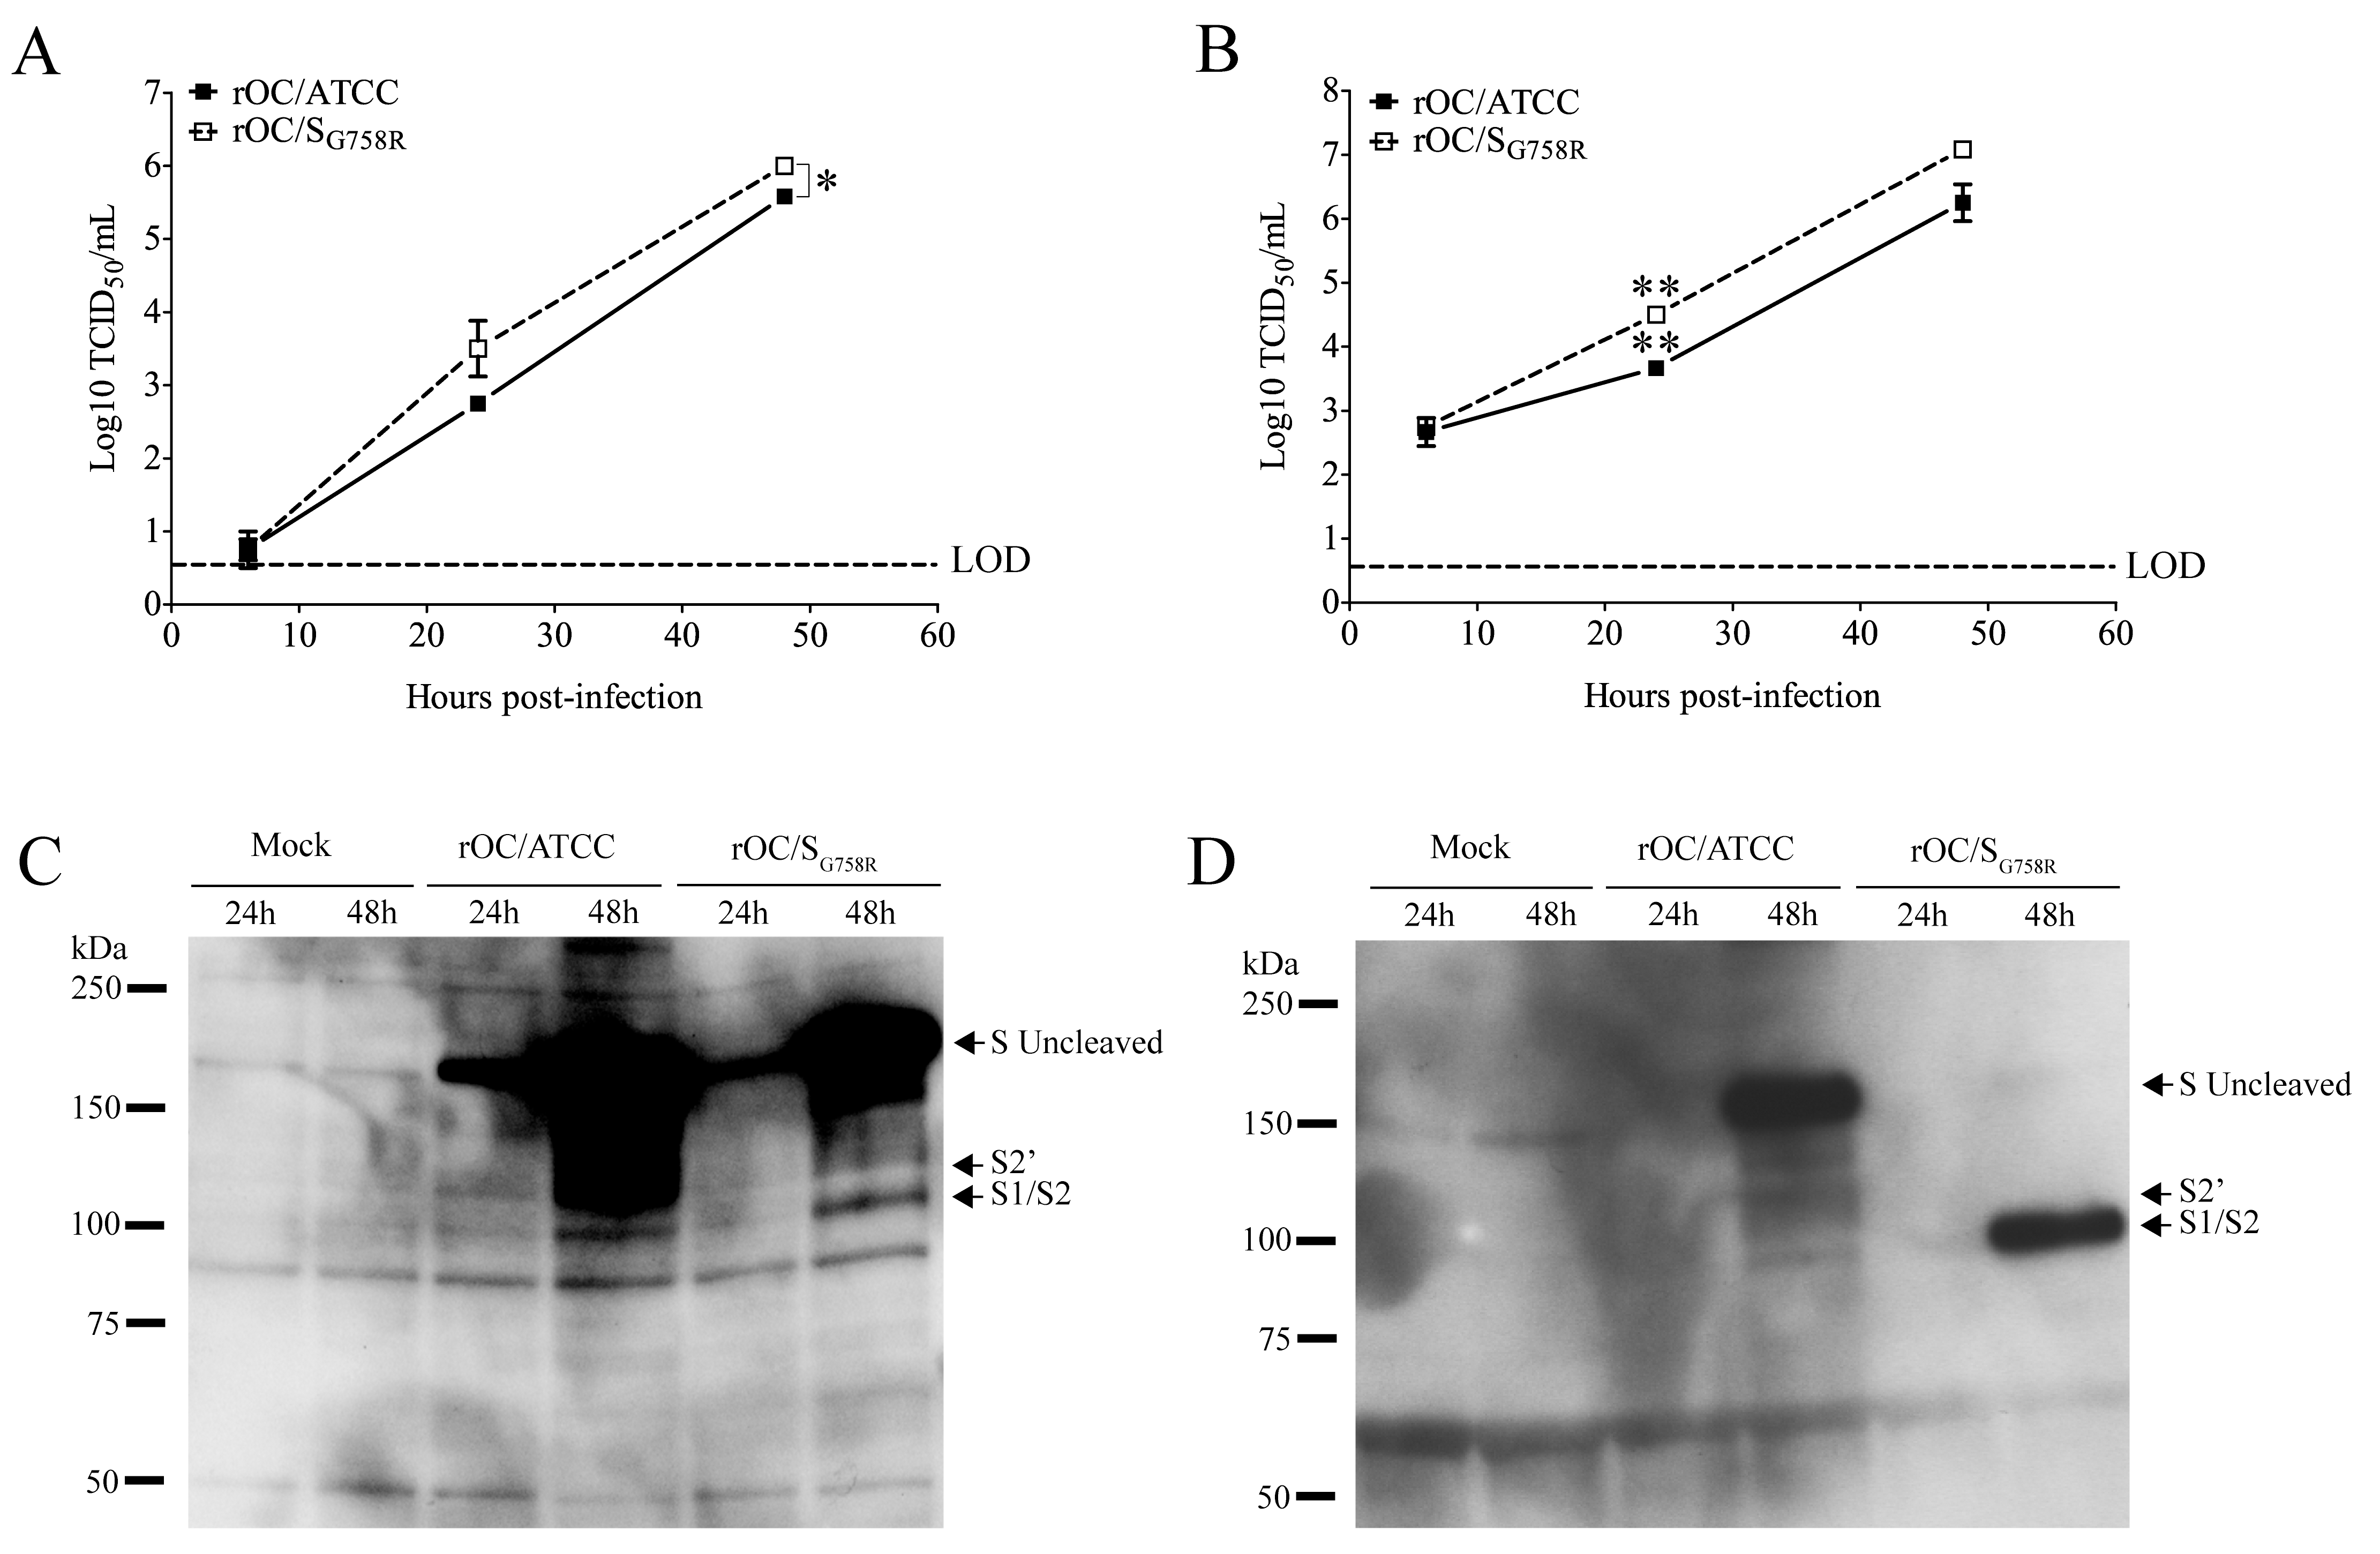 Cleavage of S glycoprotein is also observed in human LA-N-5 cells for mutant virus.